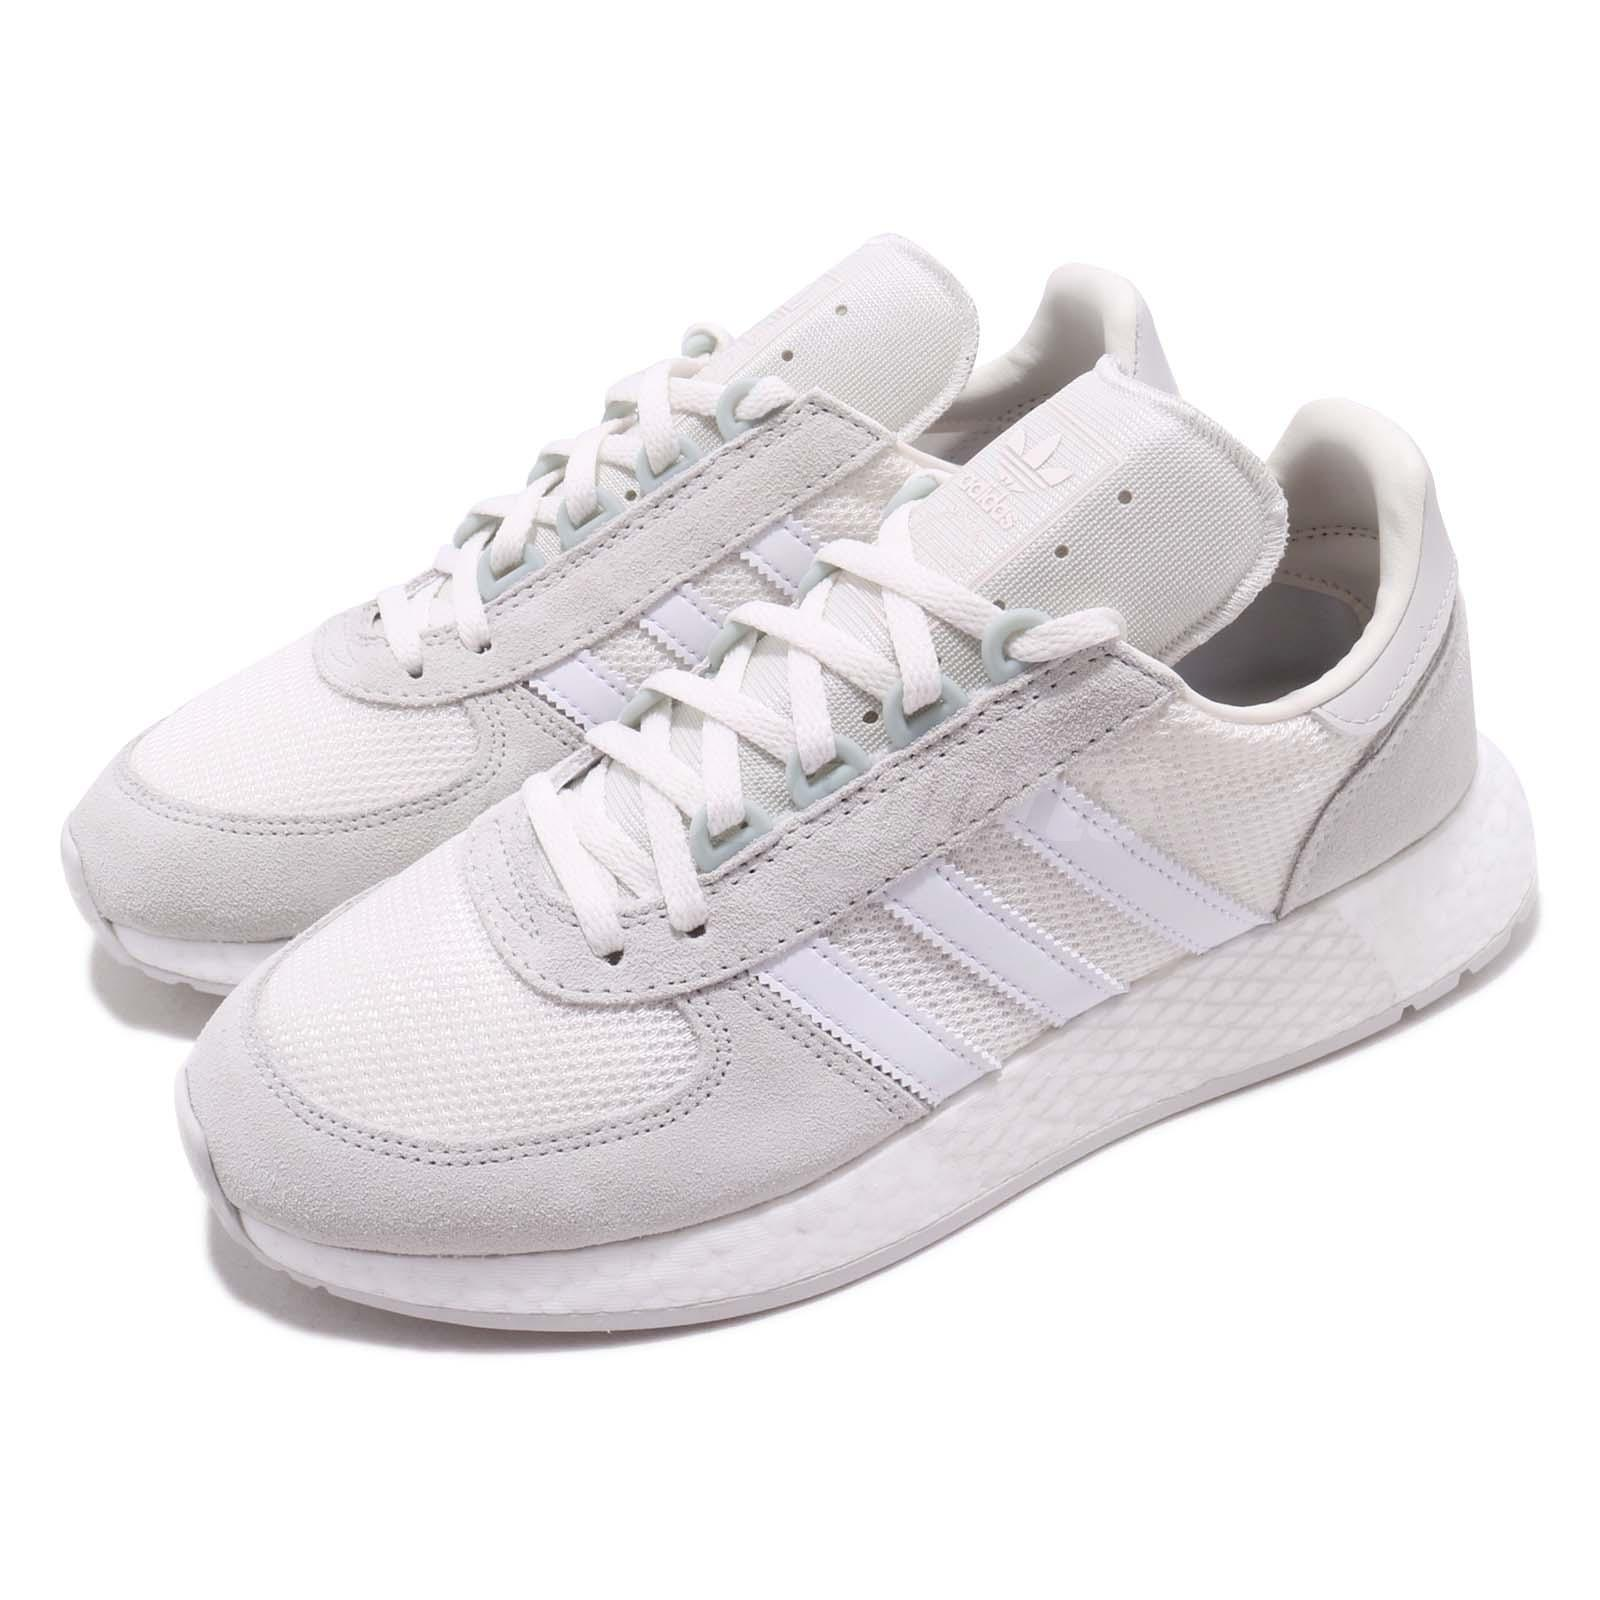 Détails sur adidas Originals Marathon X 5923 Never Made Pack White Grey Men Shoes G27860